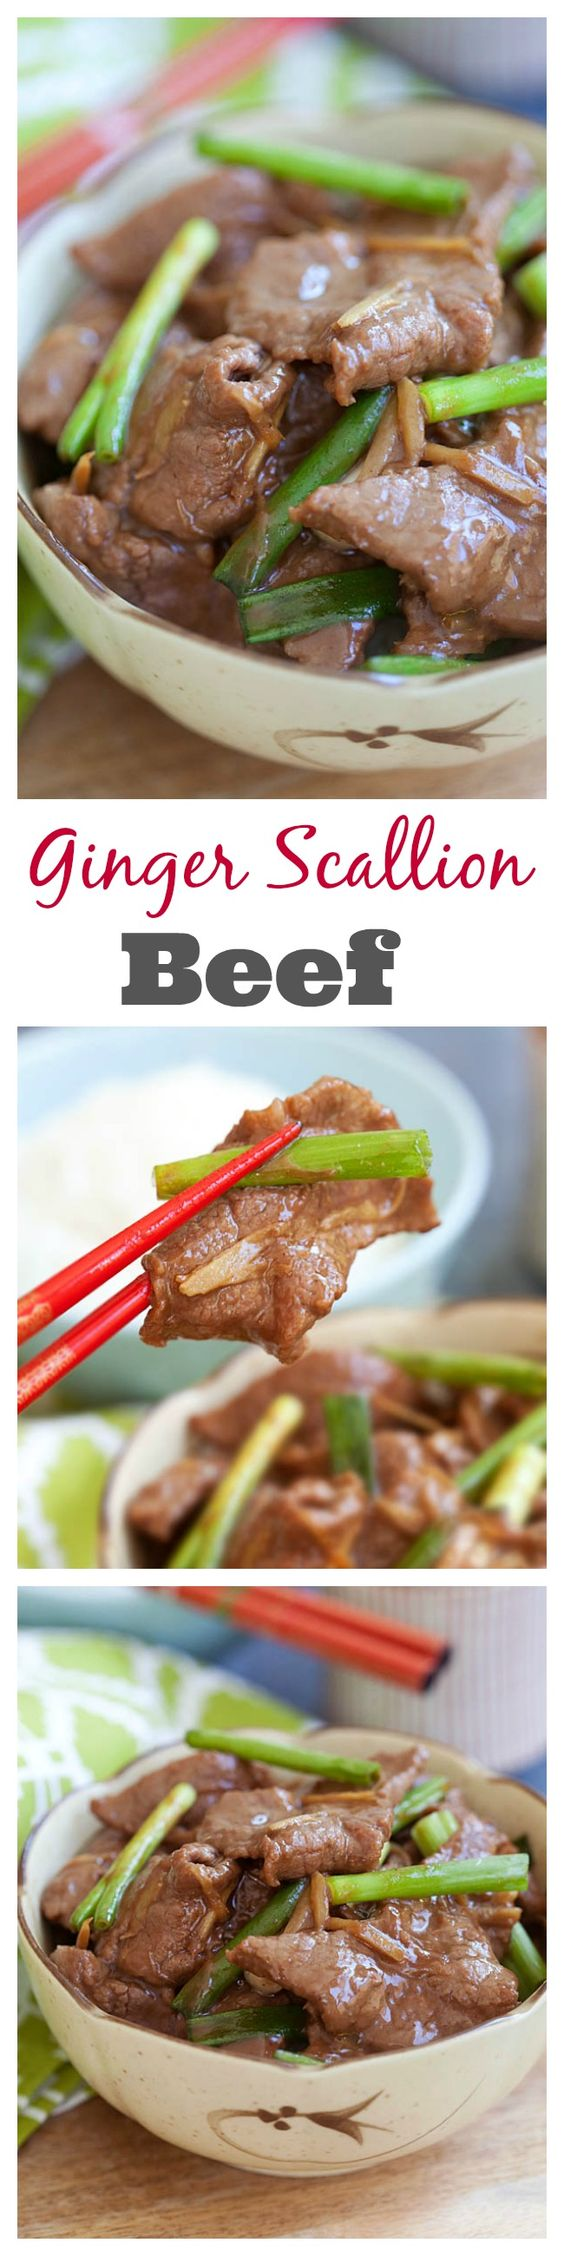 ginger and scallion beef recipe. Make ginger and scallion beef ...